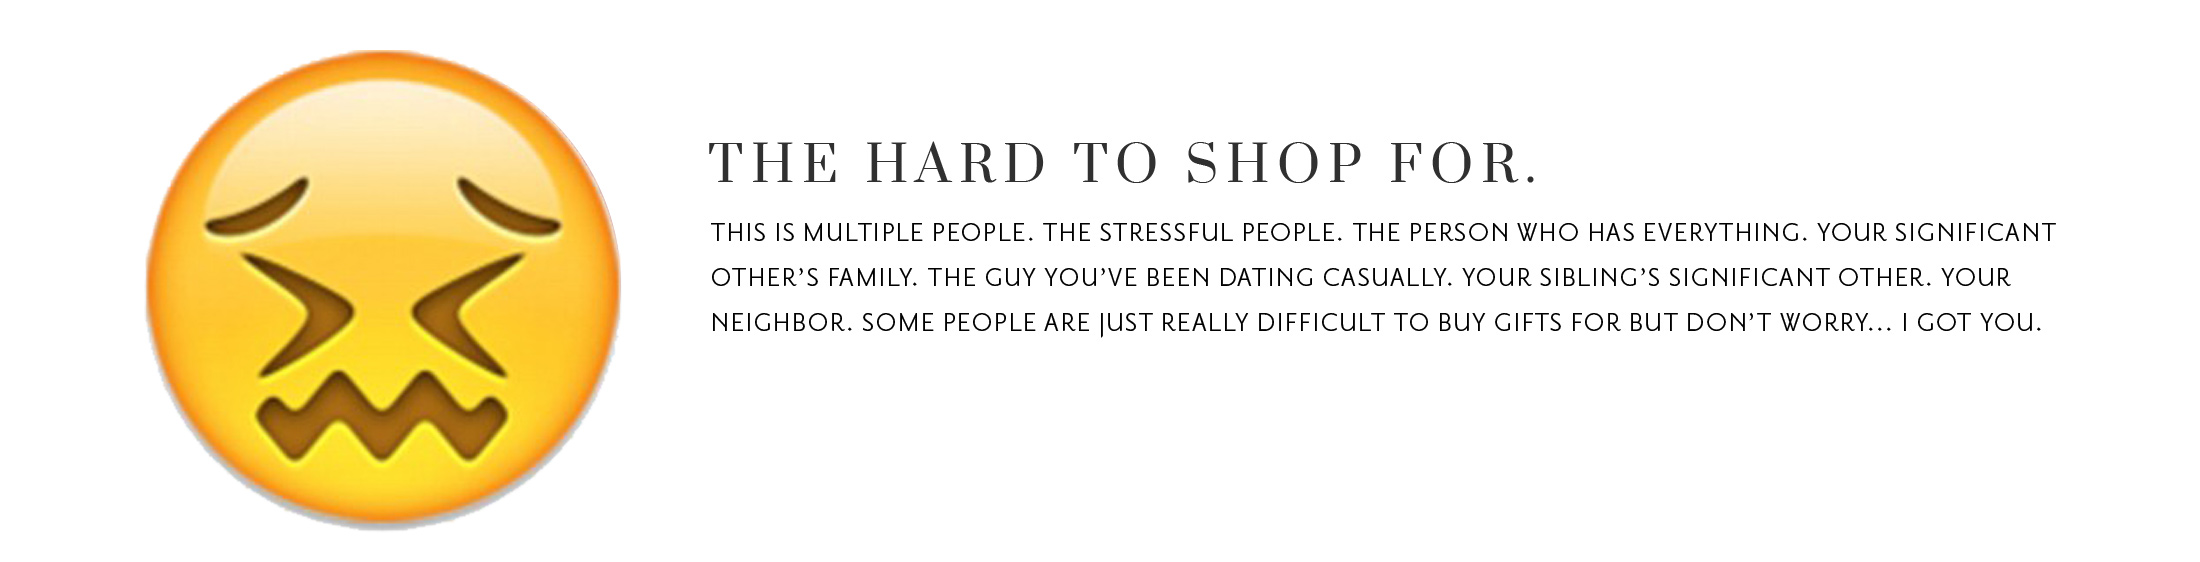 The Hard to Shop For Person